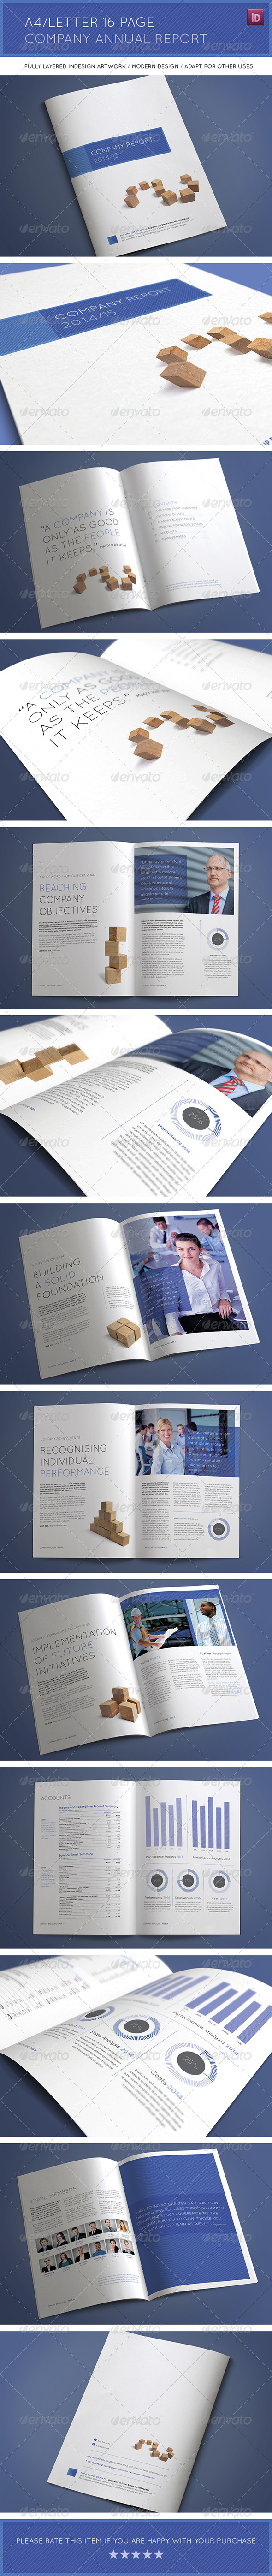 A4 Letter 16 Page Company Annual Report